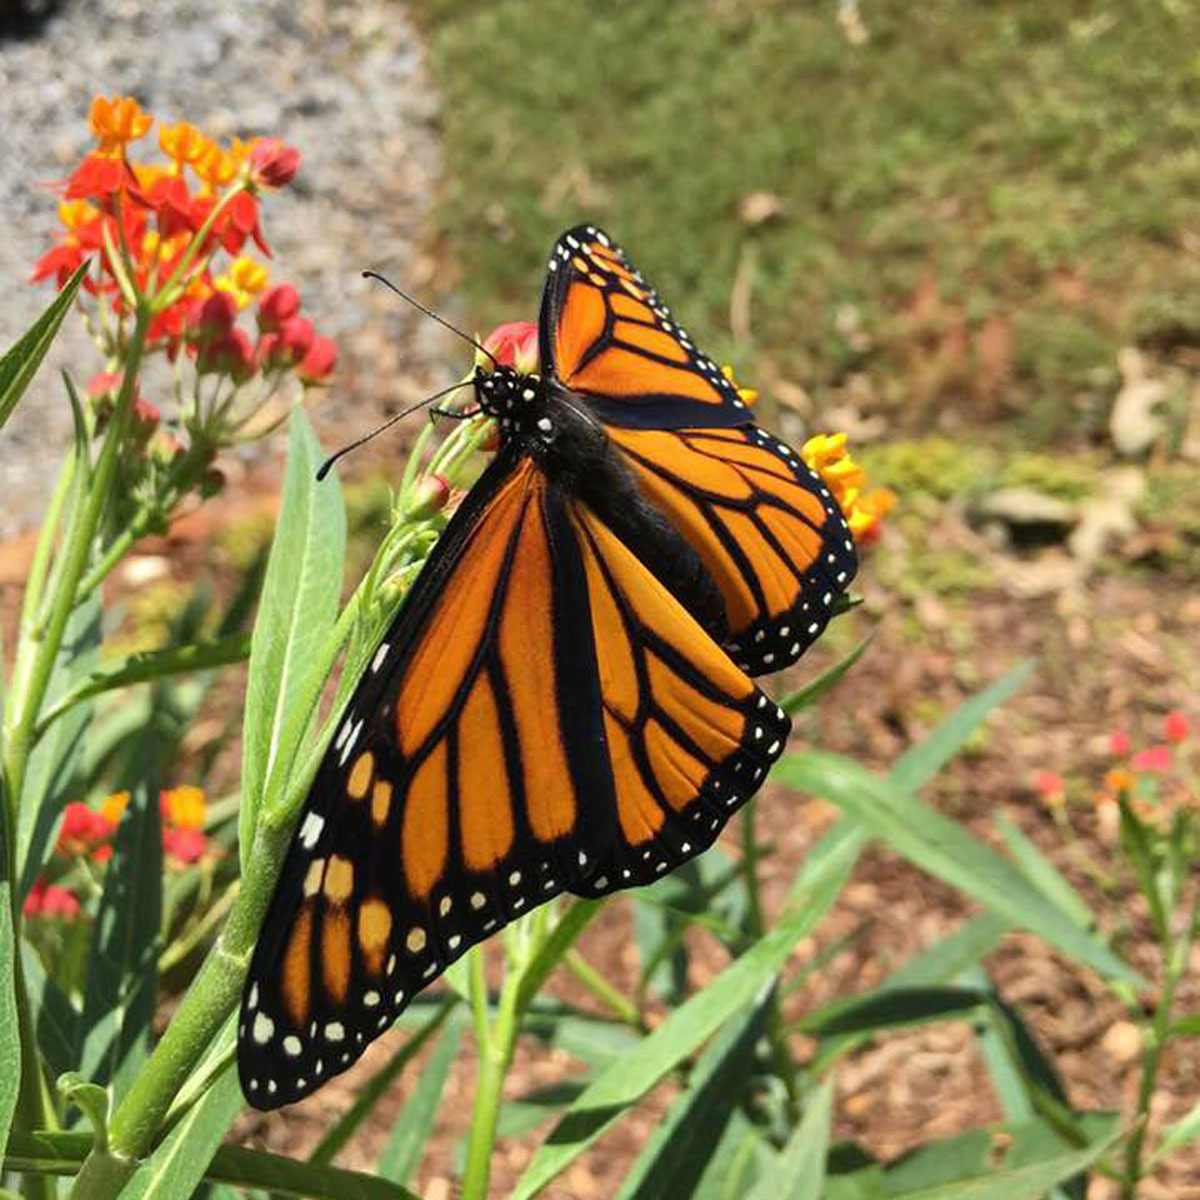 Free at last! This is one of 7 Monarch butterflies that Barbara saved this year